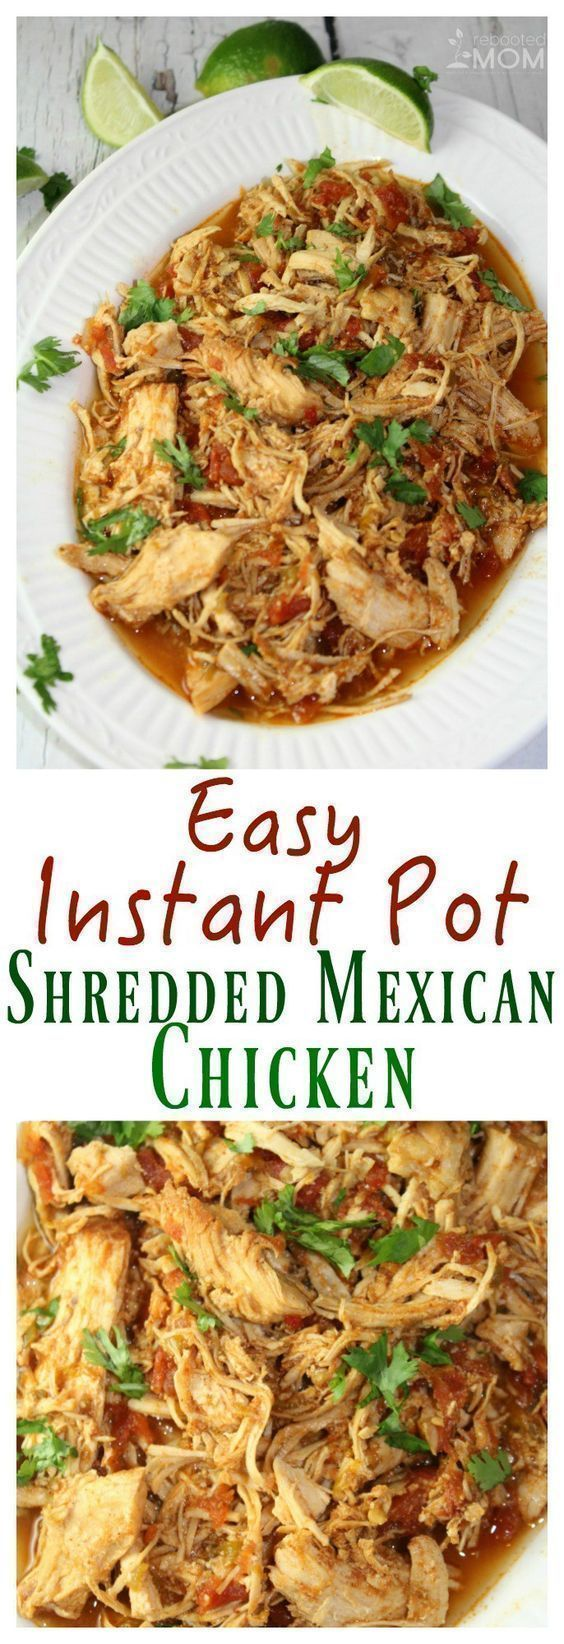 This Instant Pot Shredded Mexican Chicken is not only easy to make, it's great to have on hand at home for tacos, burritos, chimichangas, or just eaten over rice!